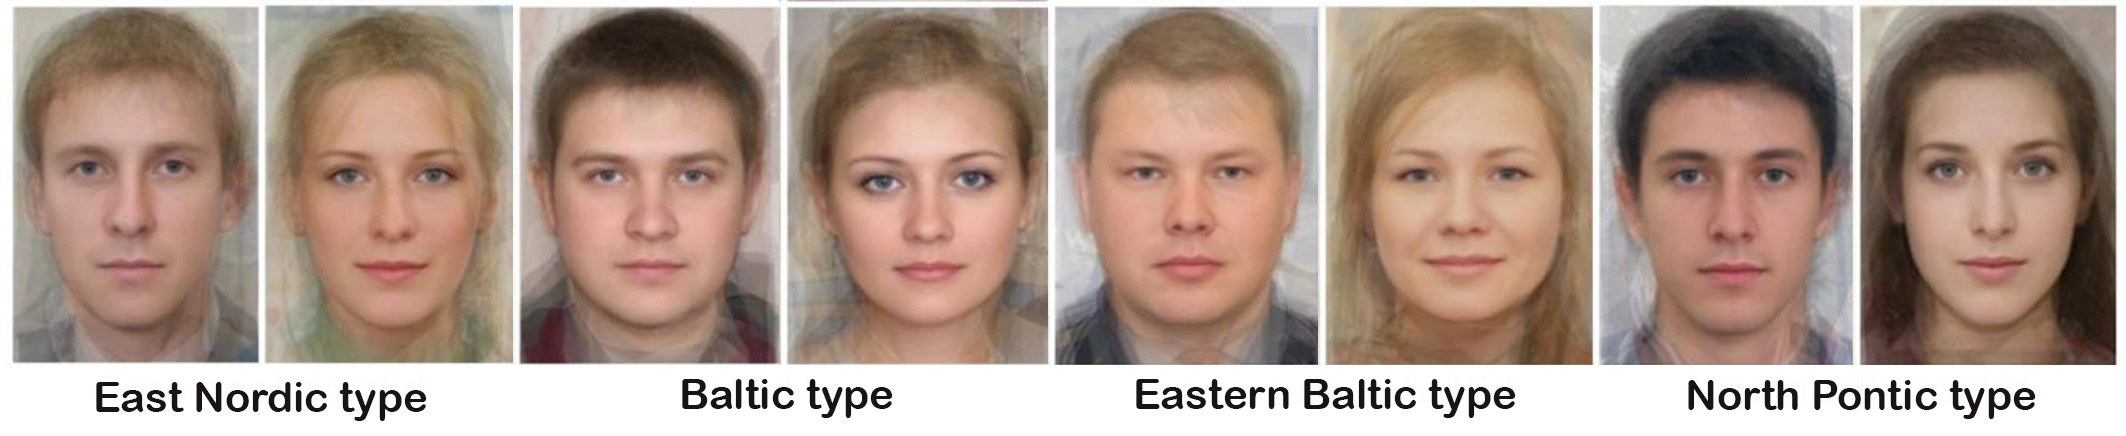 Russian Facial Features